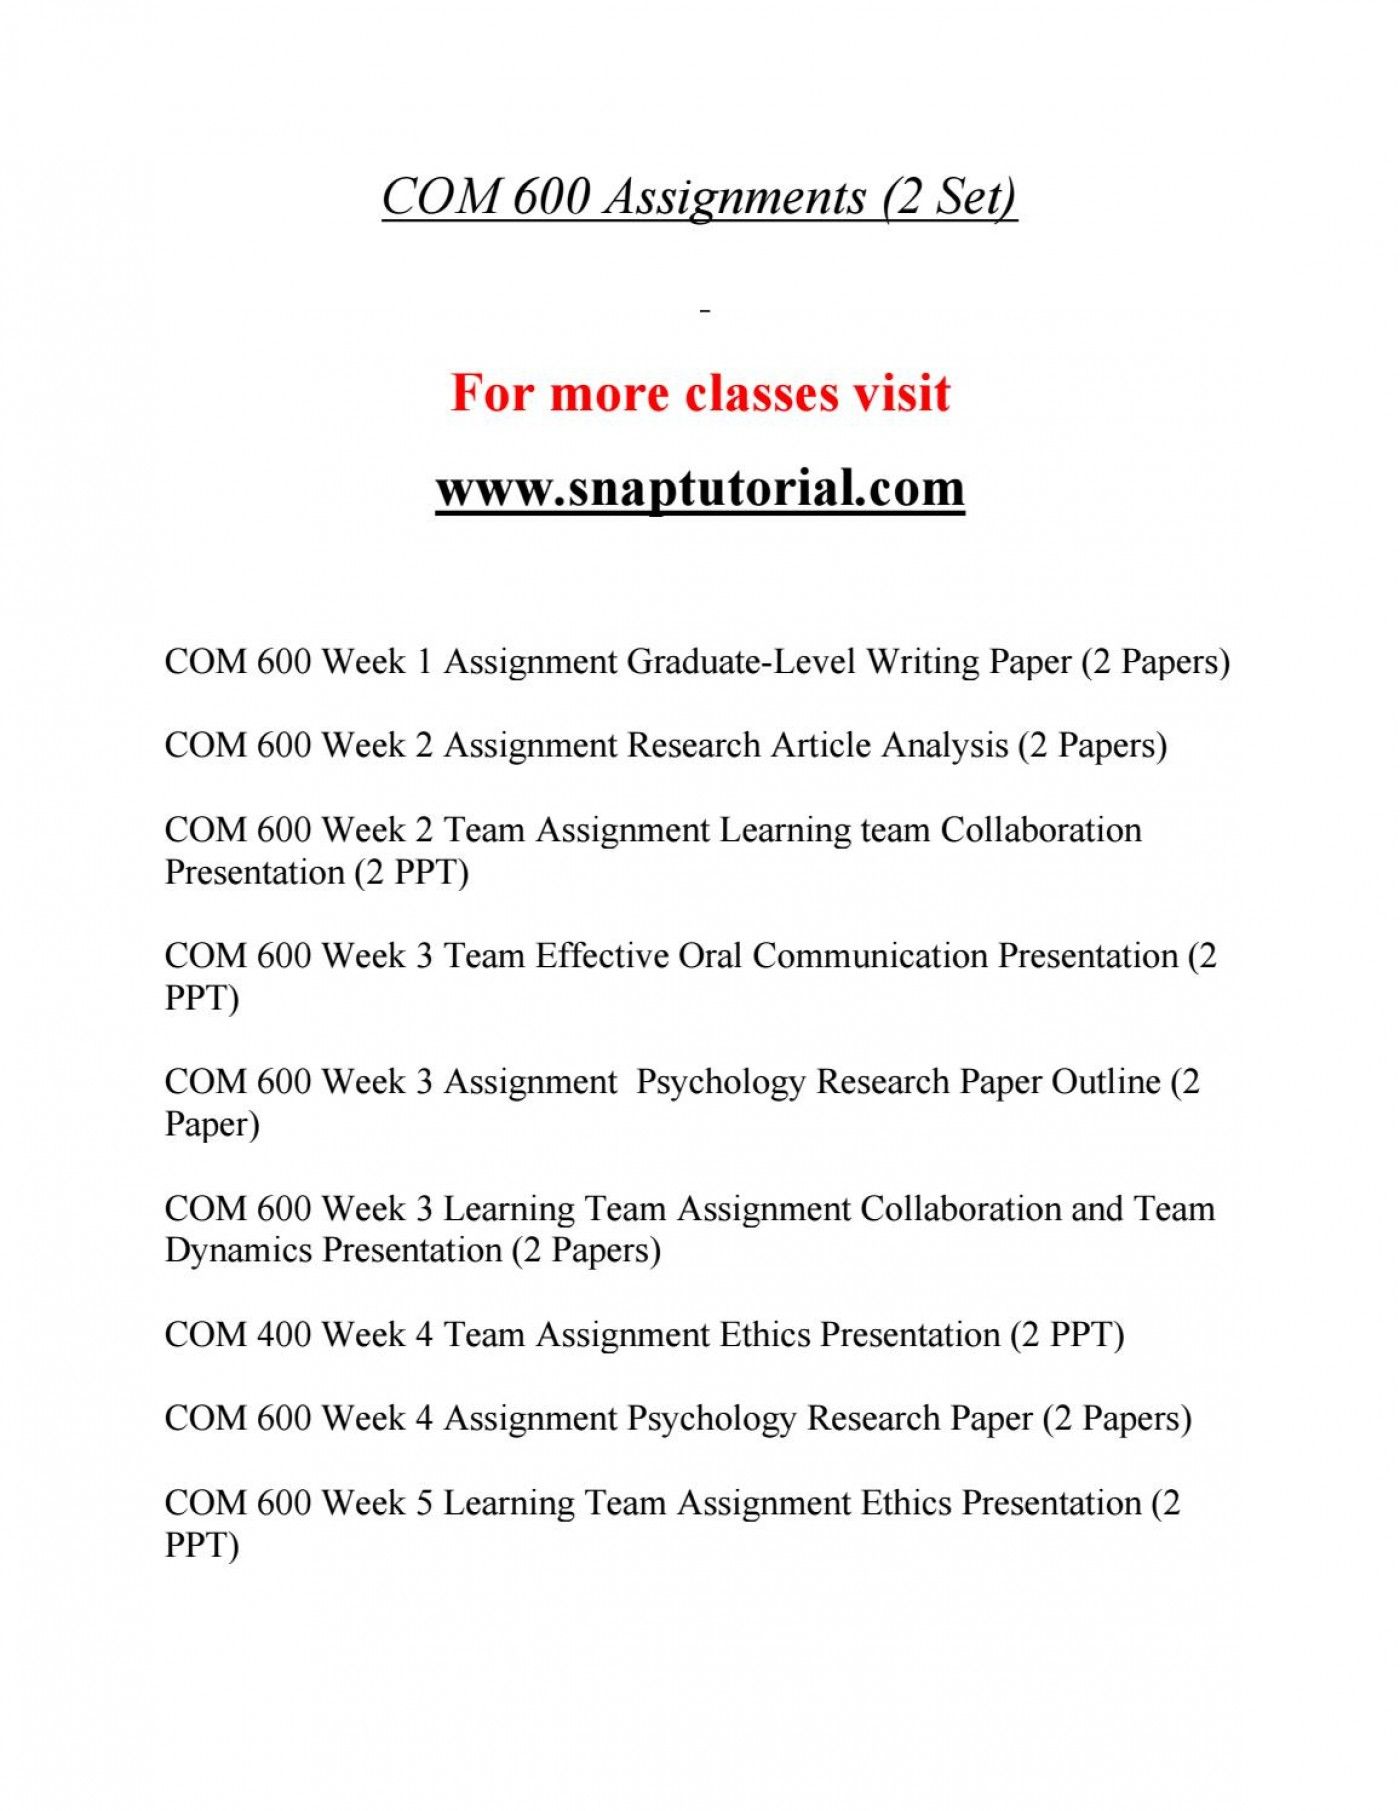 008 Psychology Research Paper Outline Com Page 1 Striking 600 Com/600 1400